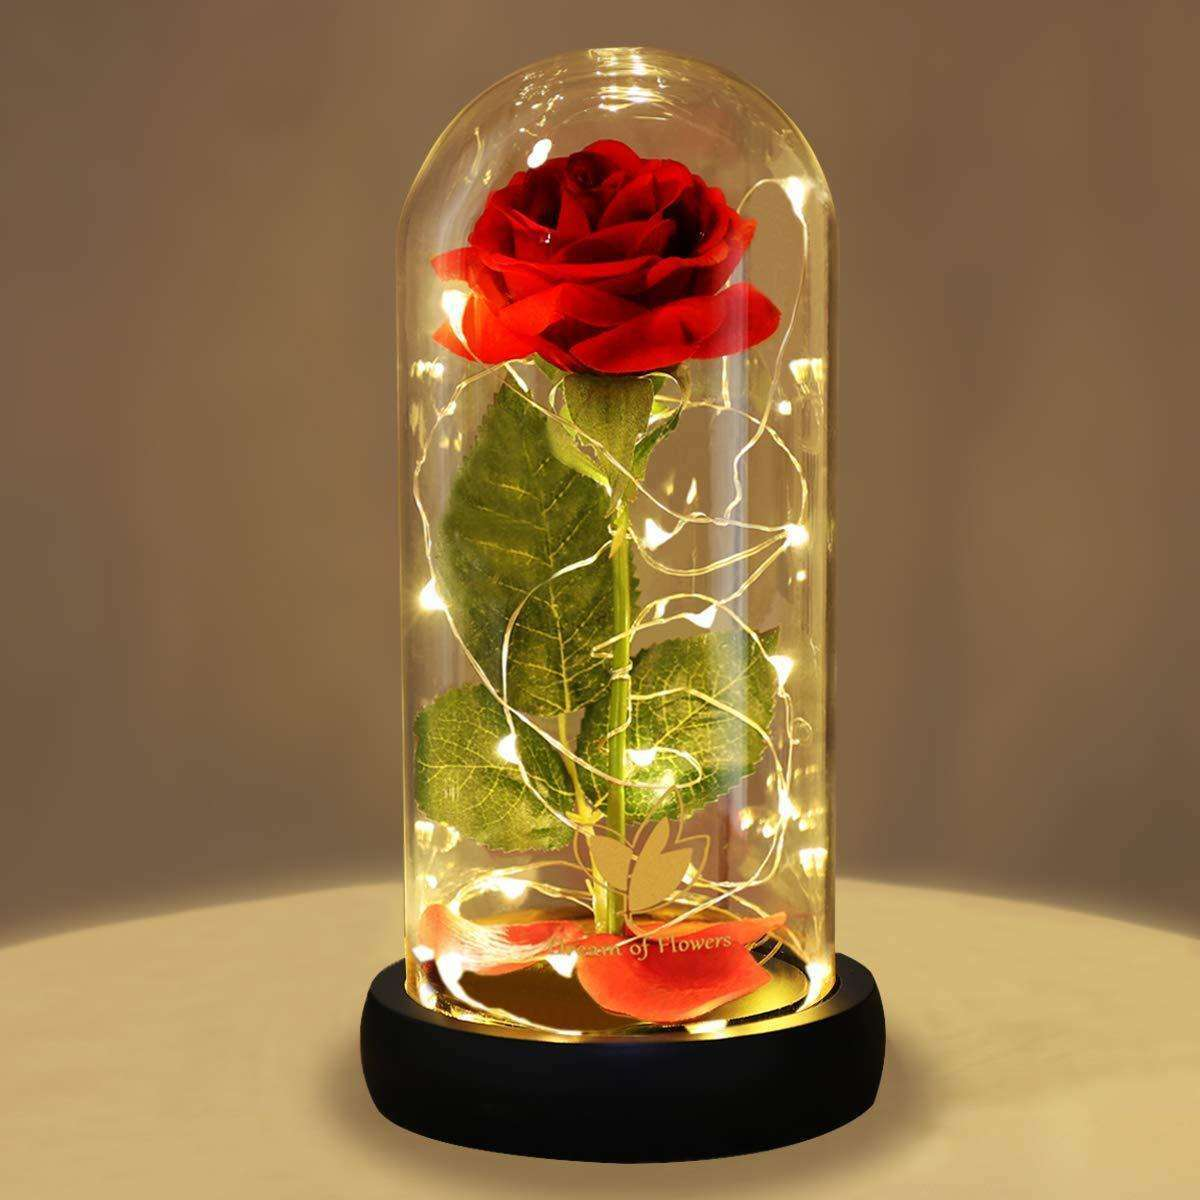 Magnificent Glass Domed Light Up LED Roses, Magnificent Glass Domed Light Up LED Roses,In God's Service Store